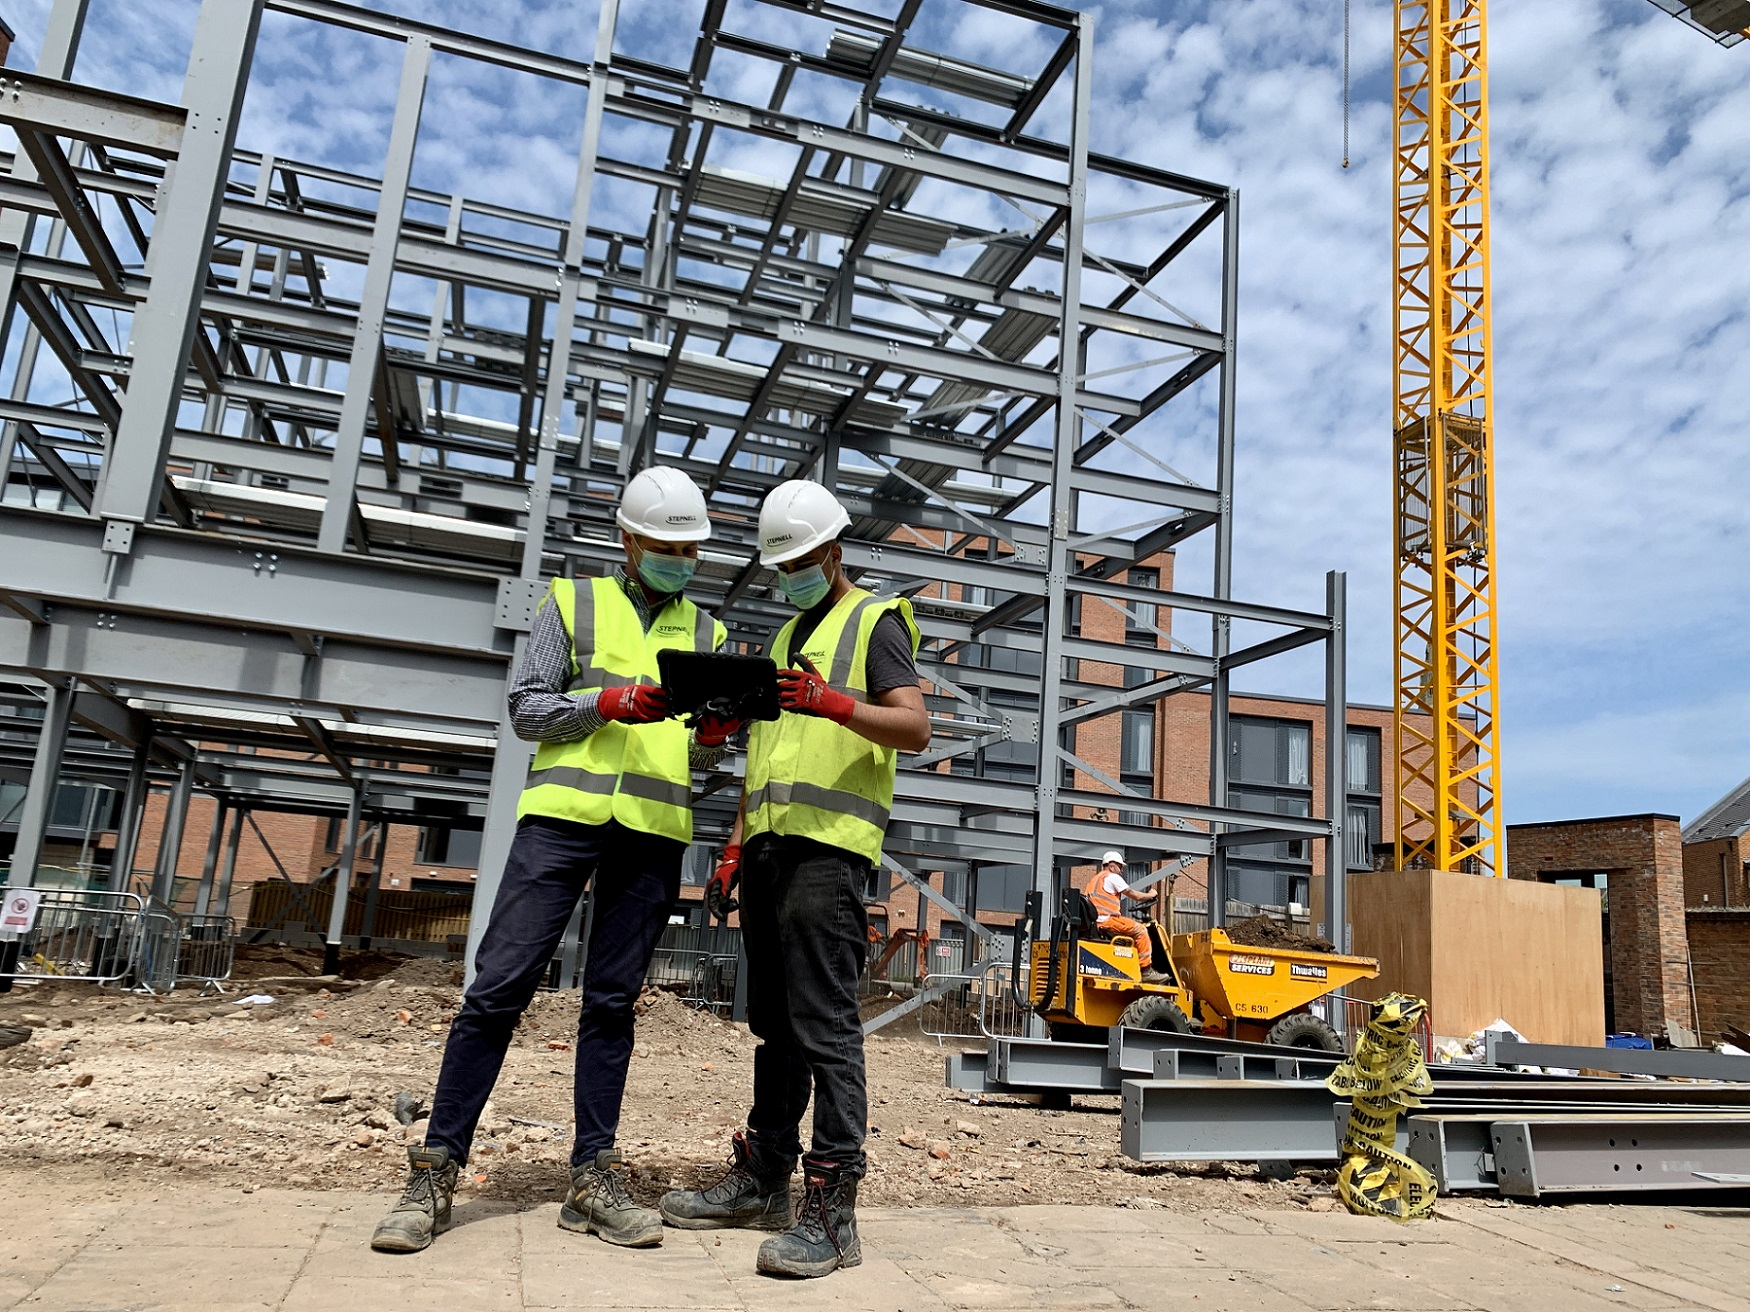 THE DIGITISATION OF THE CONSTRUCTION SECTOR: HOW ONLINE PLATFORMS ARE WORKING TO MAXIMISE CLIENT SATISFACTION